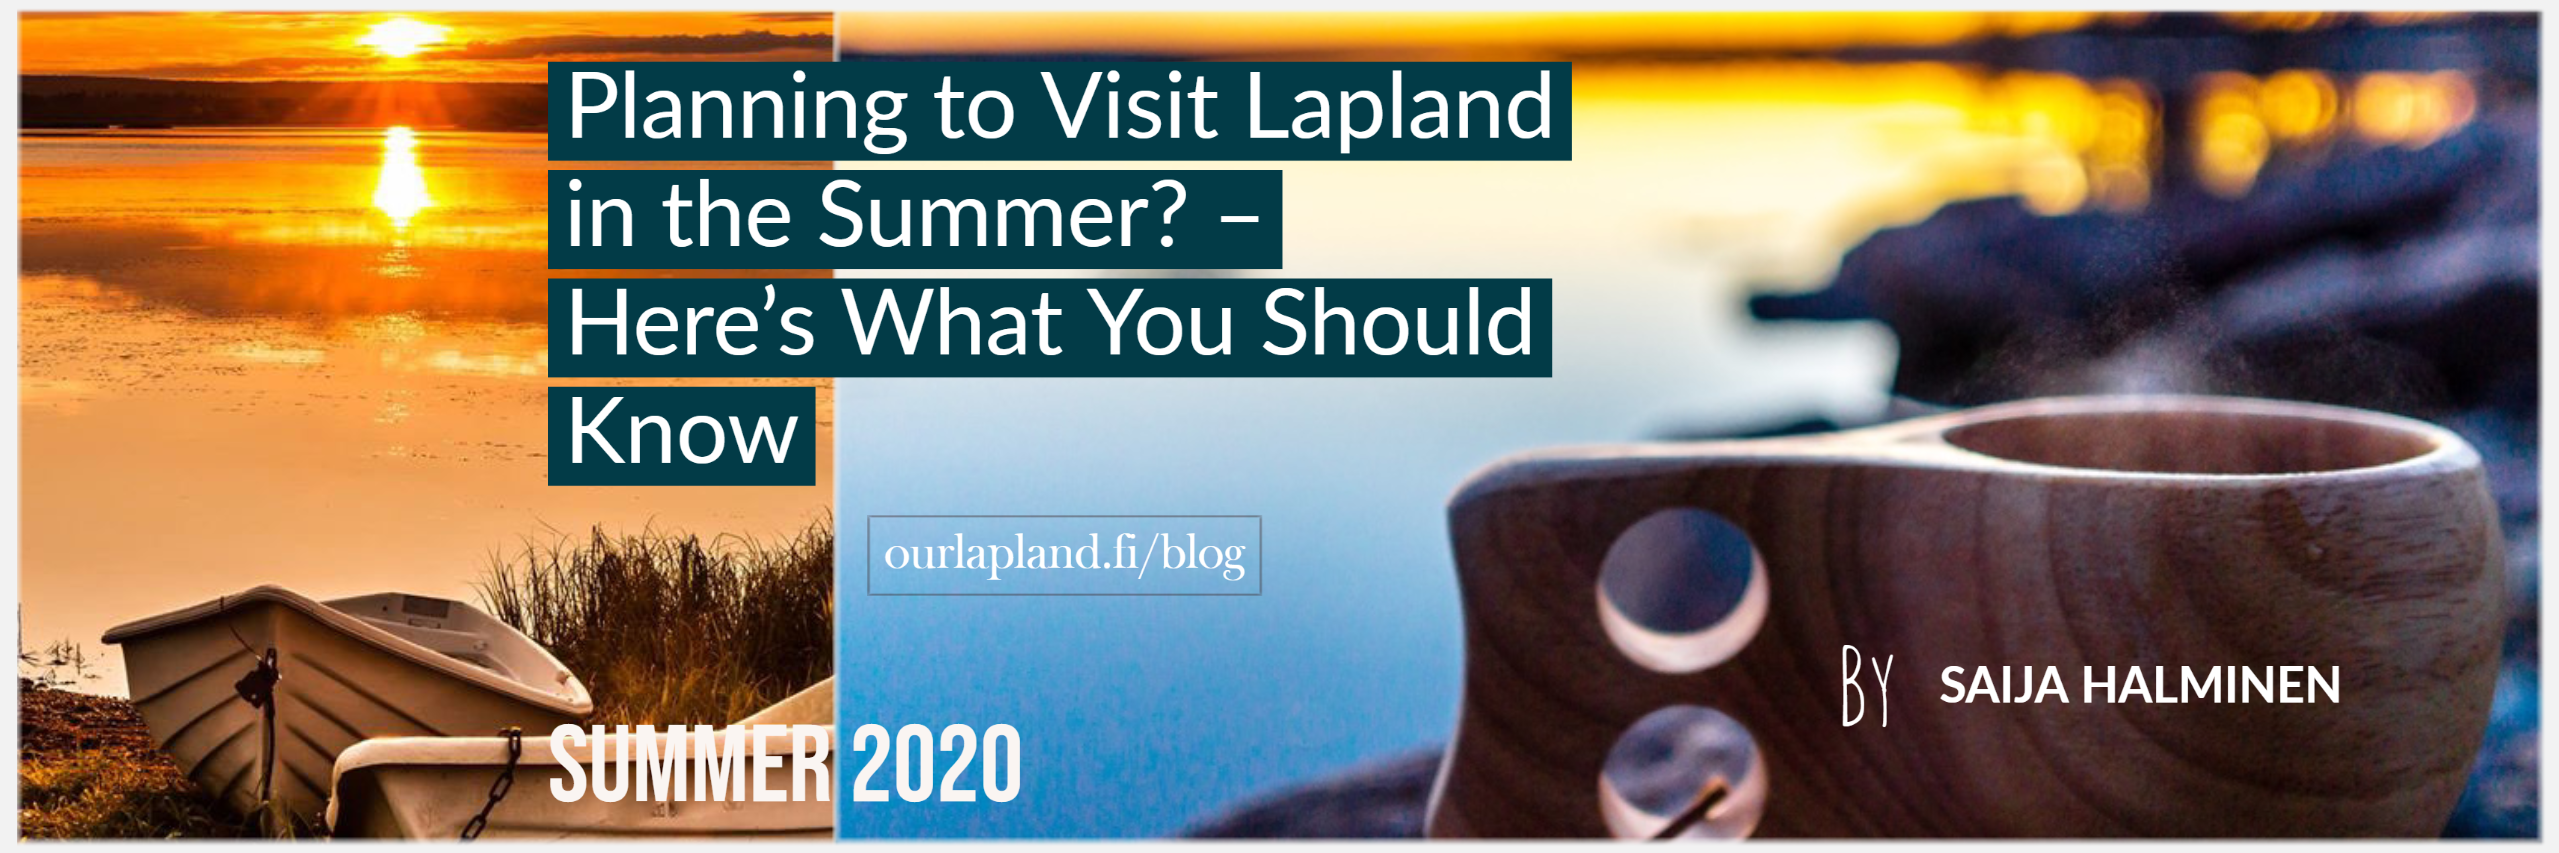 Planning to Visit Lapland in the Summer_ – Here's What You Should Know - summer 2020